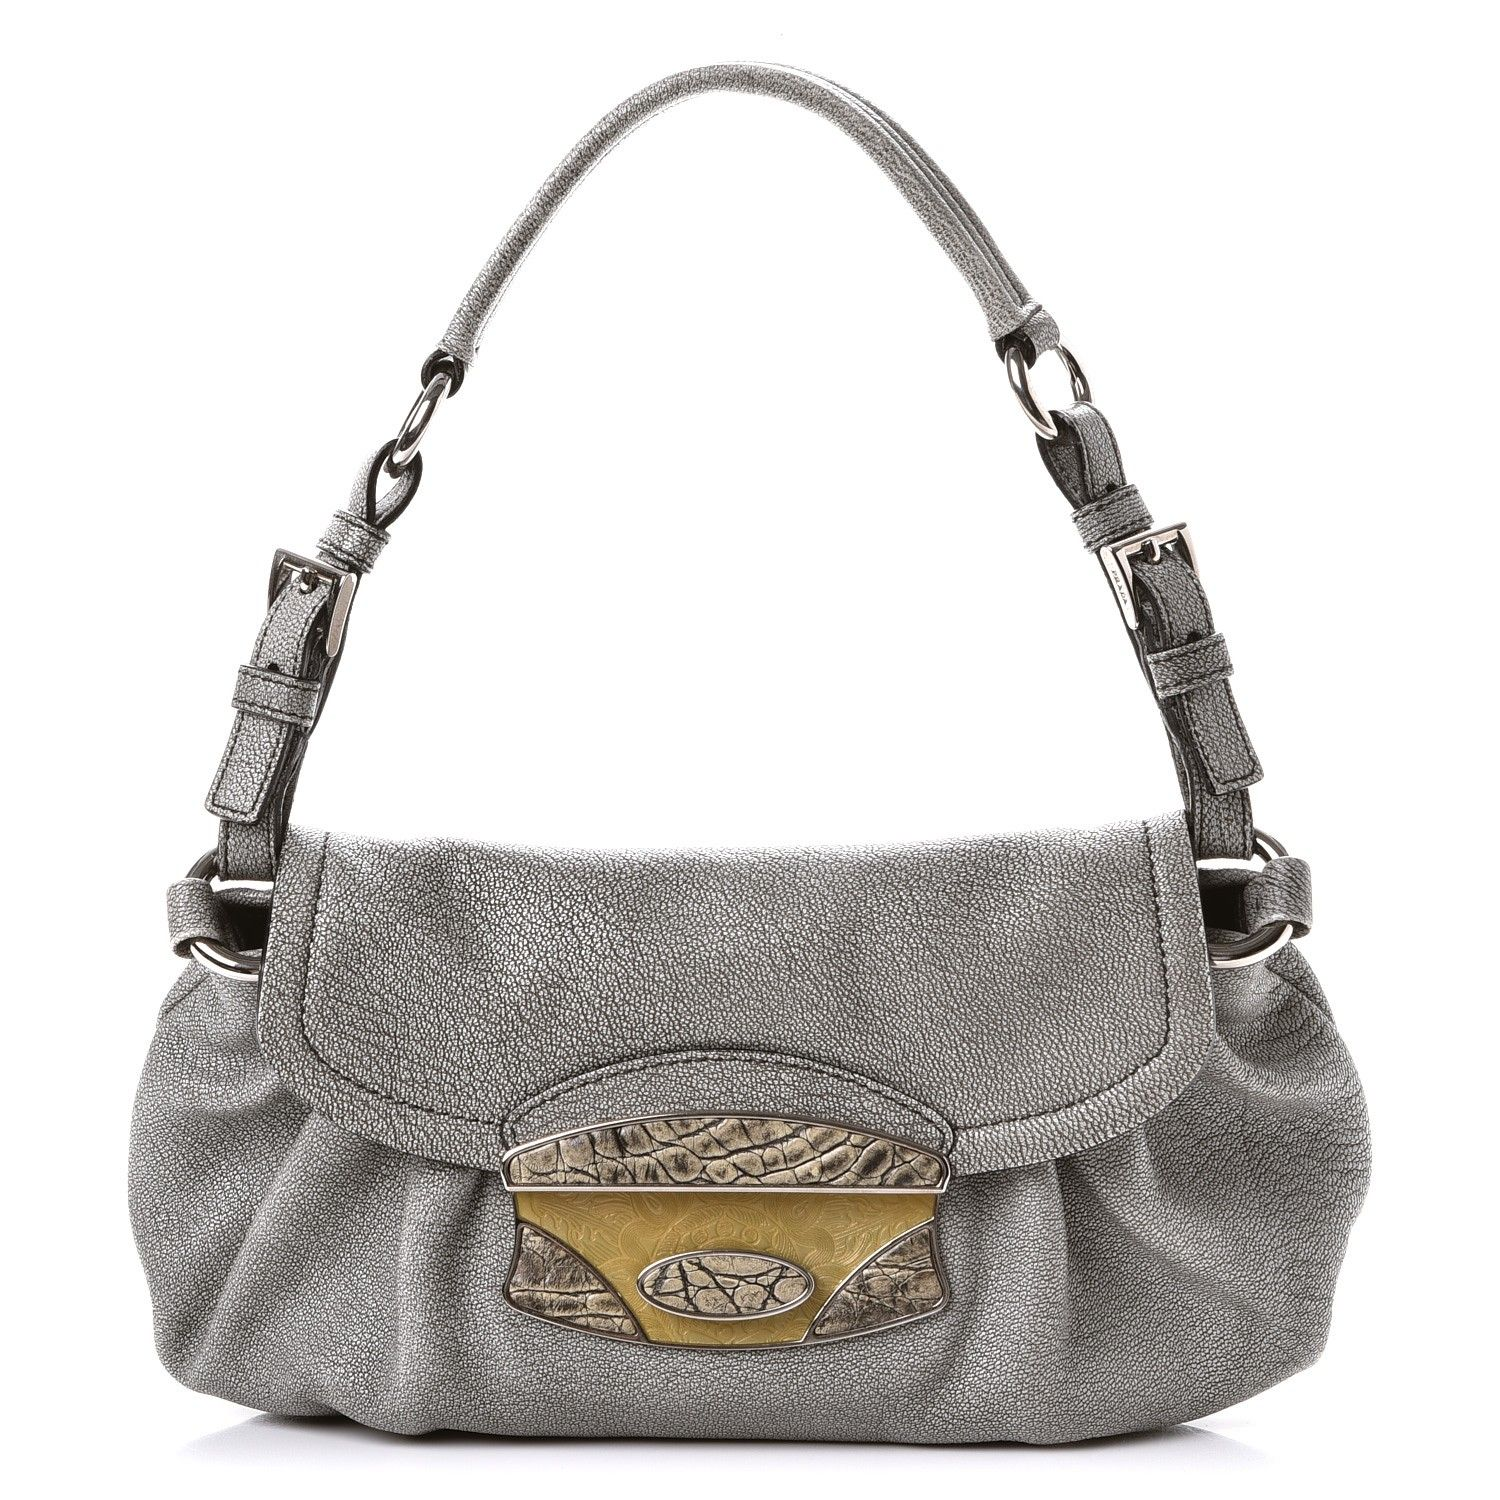 b6f2fdf04a10 ... france new arrivals prada metallic goatskin shoulder flap bag silver  e7b74 74c3f 268ba fb80b